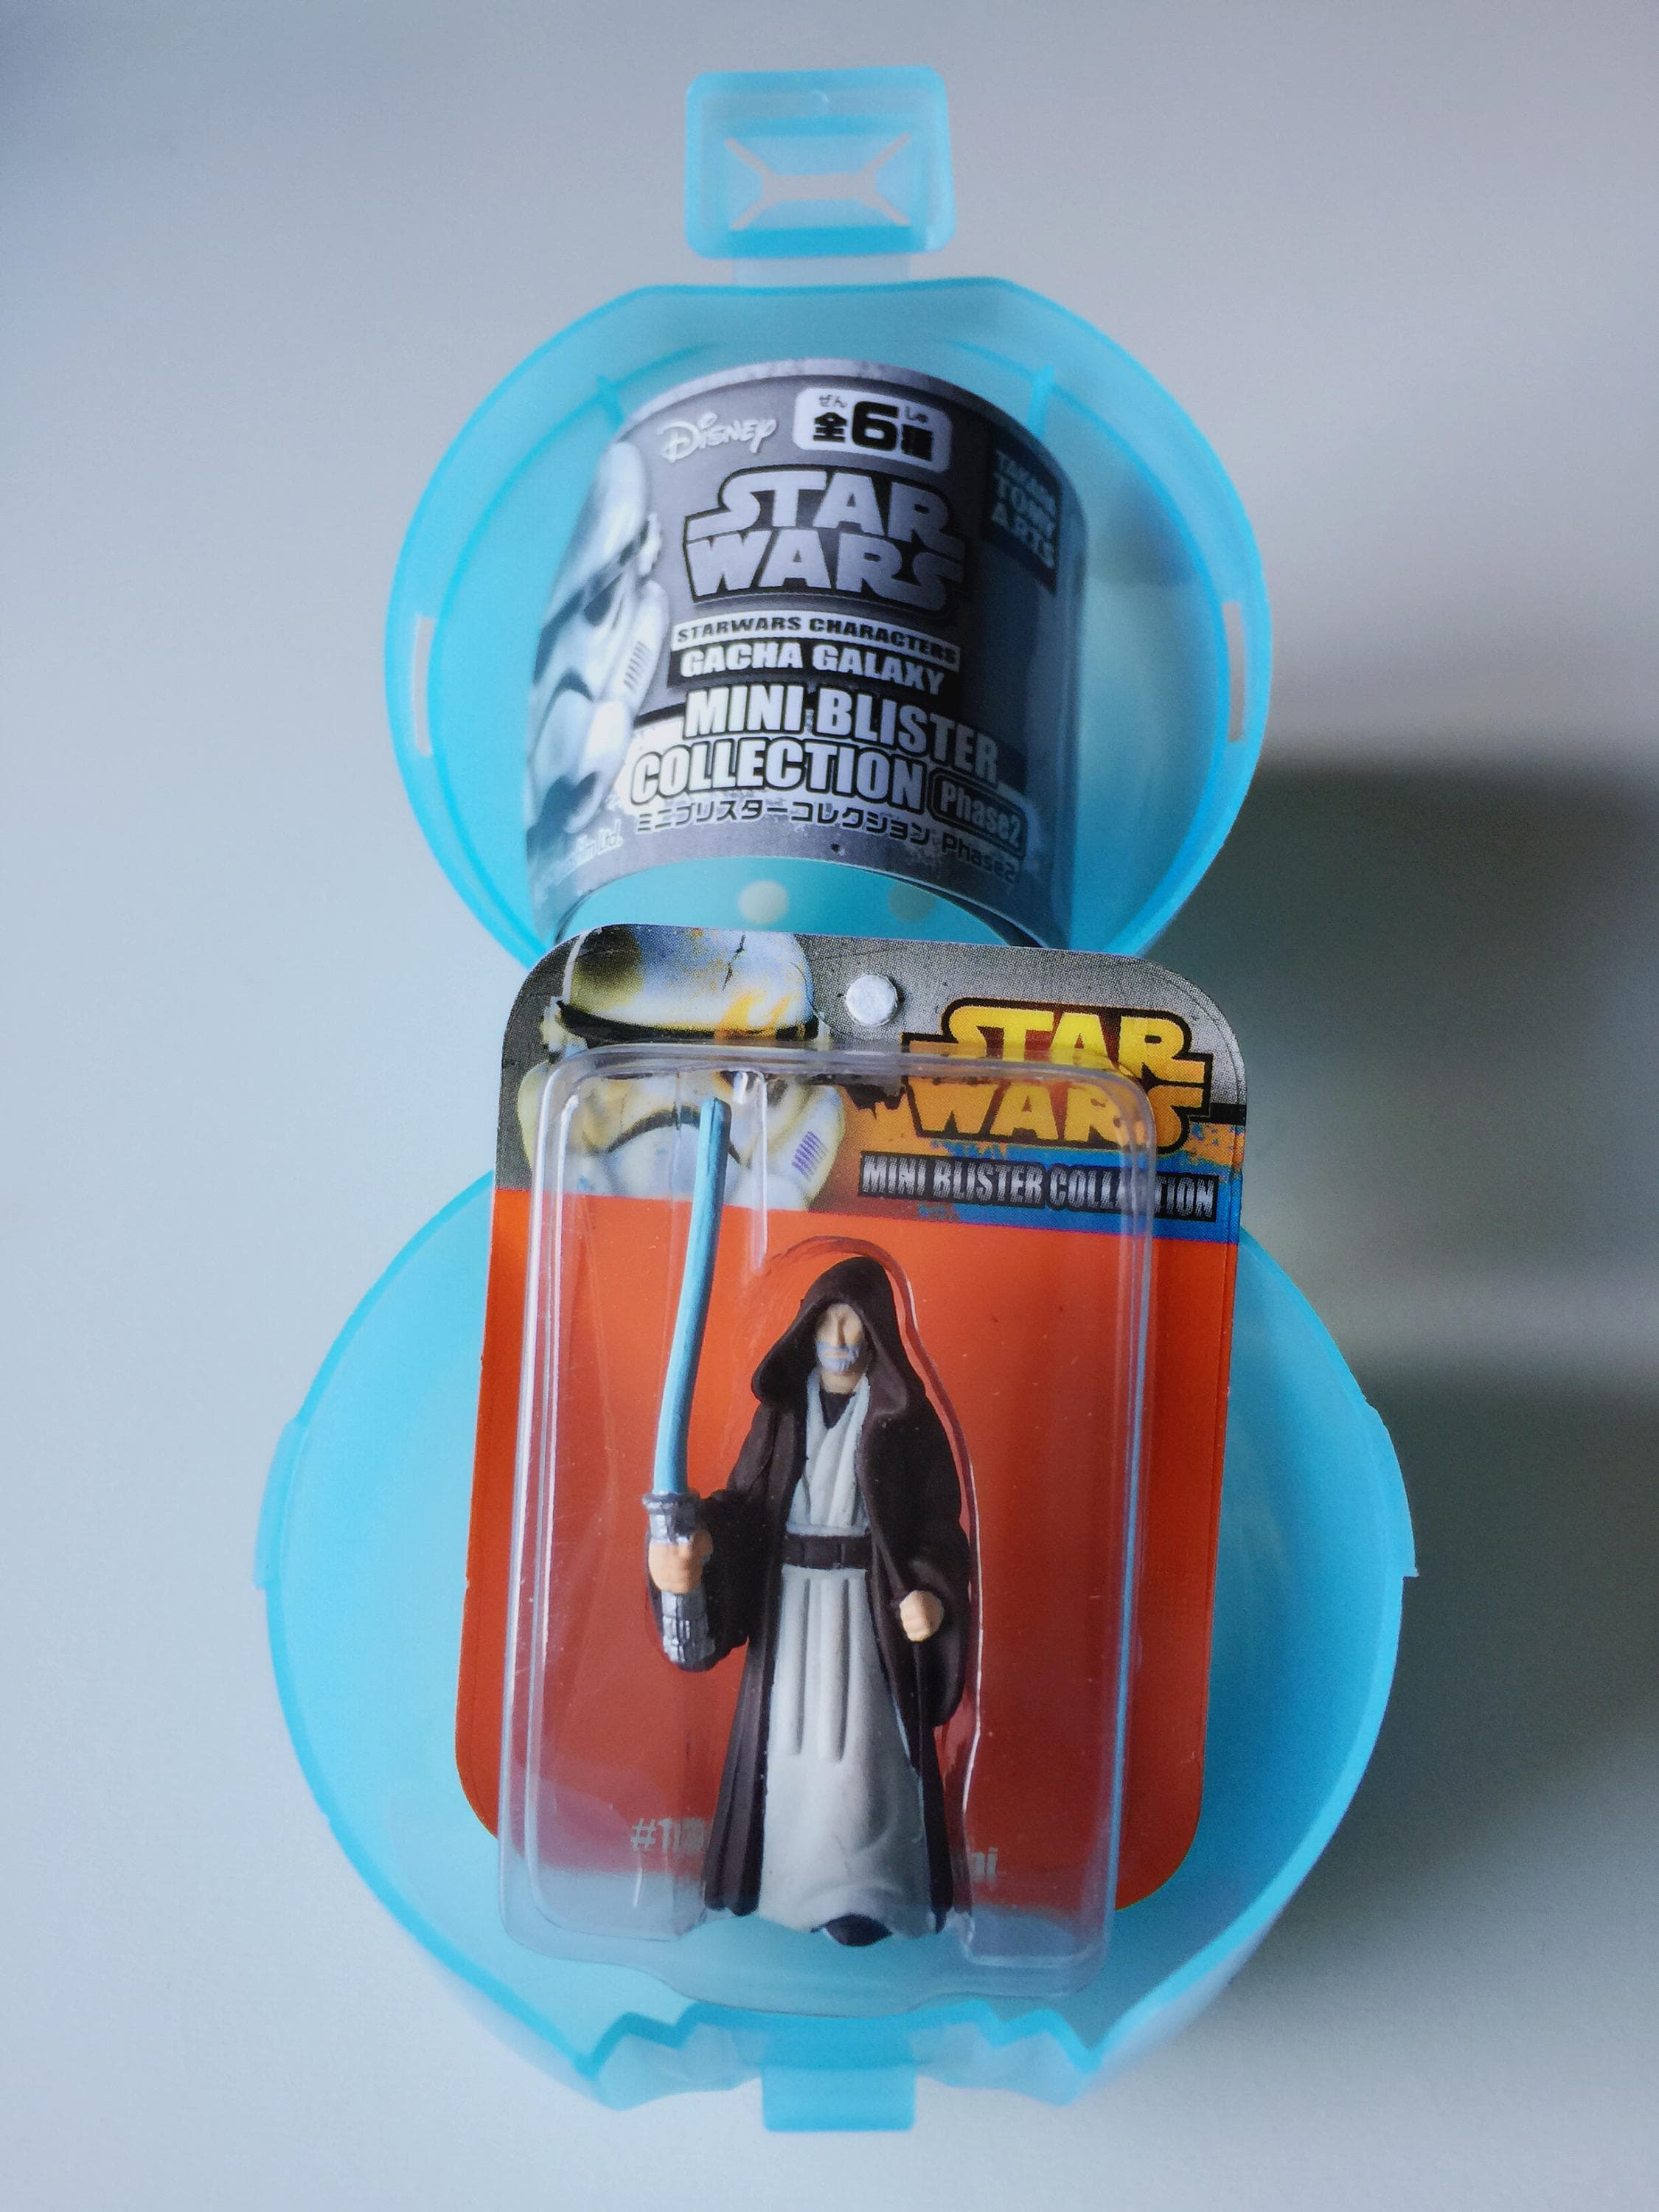 Toy Capsule Toys Star Wars Capsule Toy Mini Blister Collection Obi Wan Kenobi Mini Figurine Japanese Gashapon Tomy A R T S